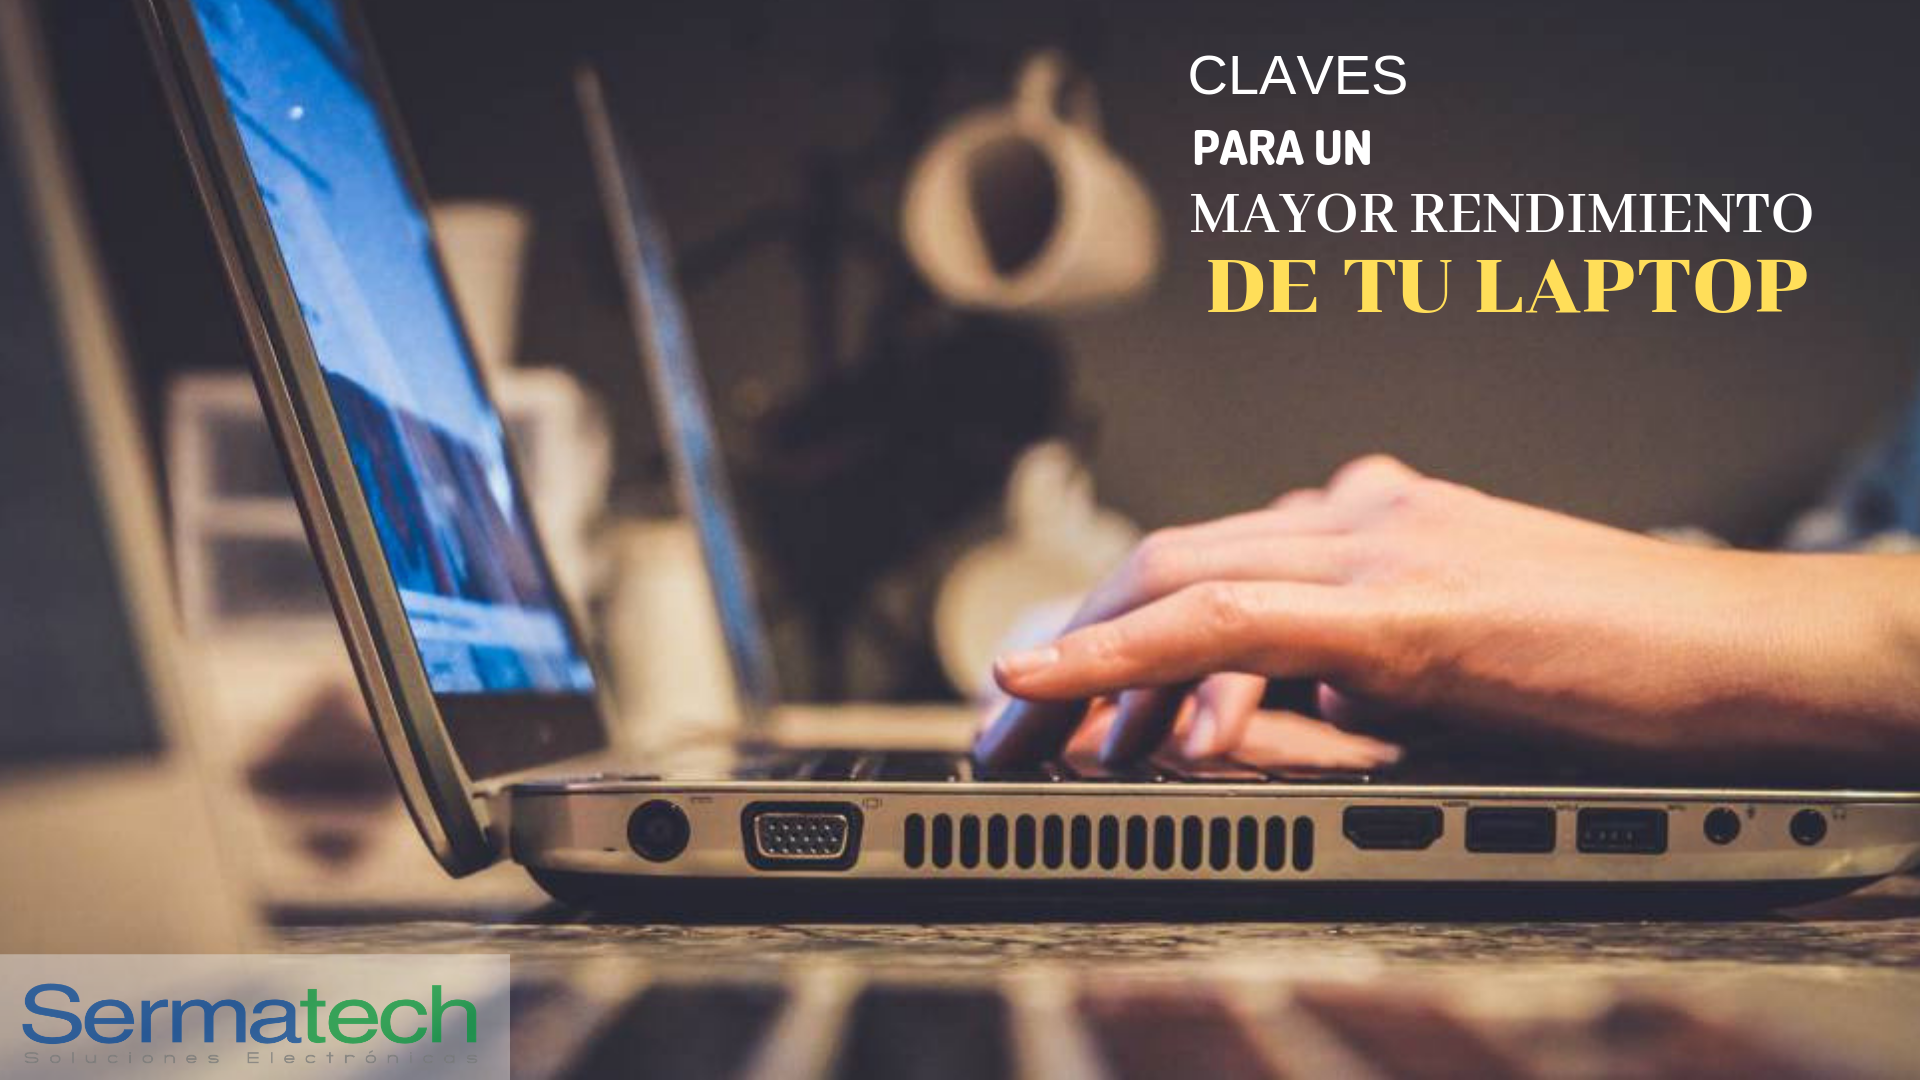 Sermatech: Claves para un mayor rendimiento de tu laptop.